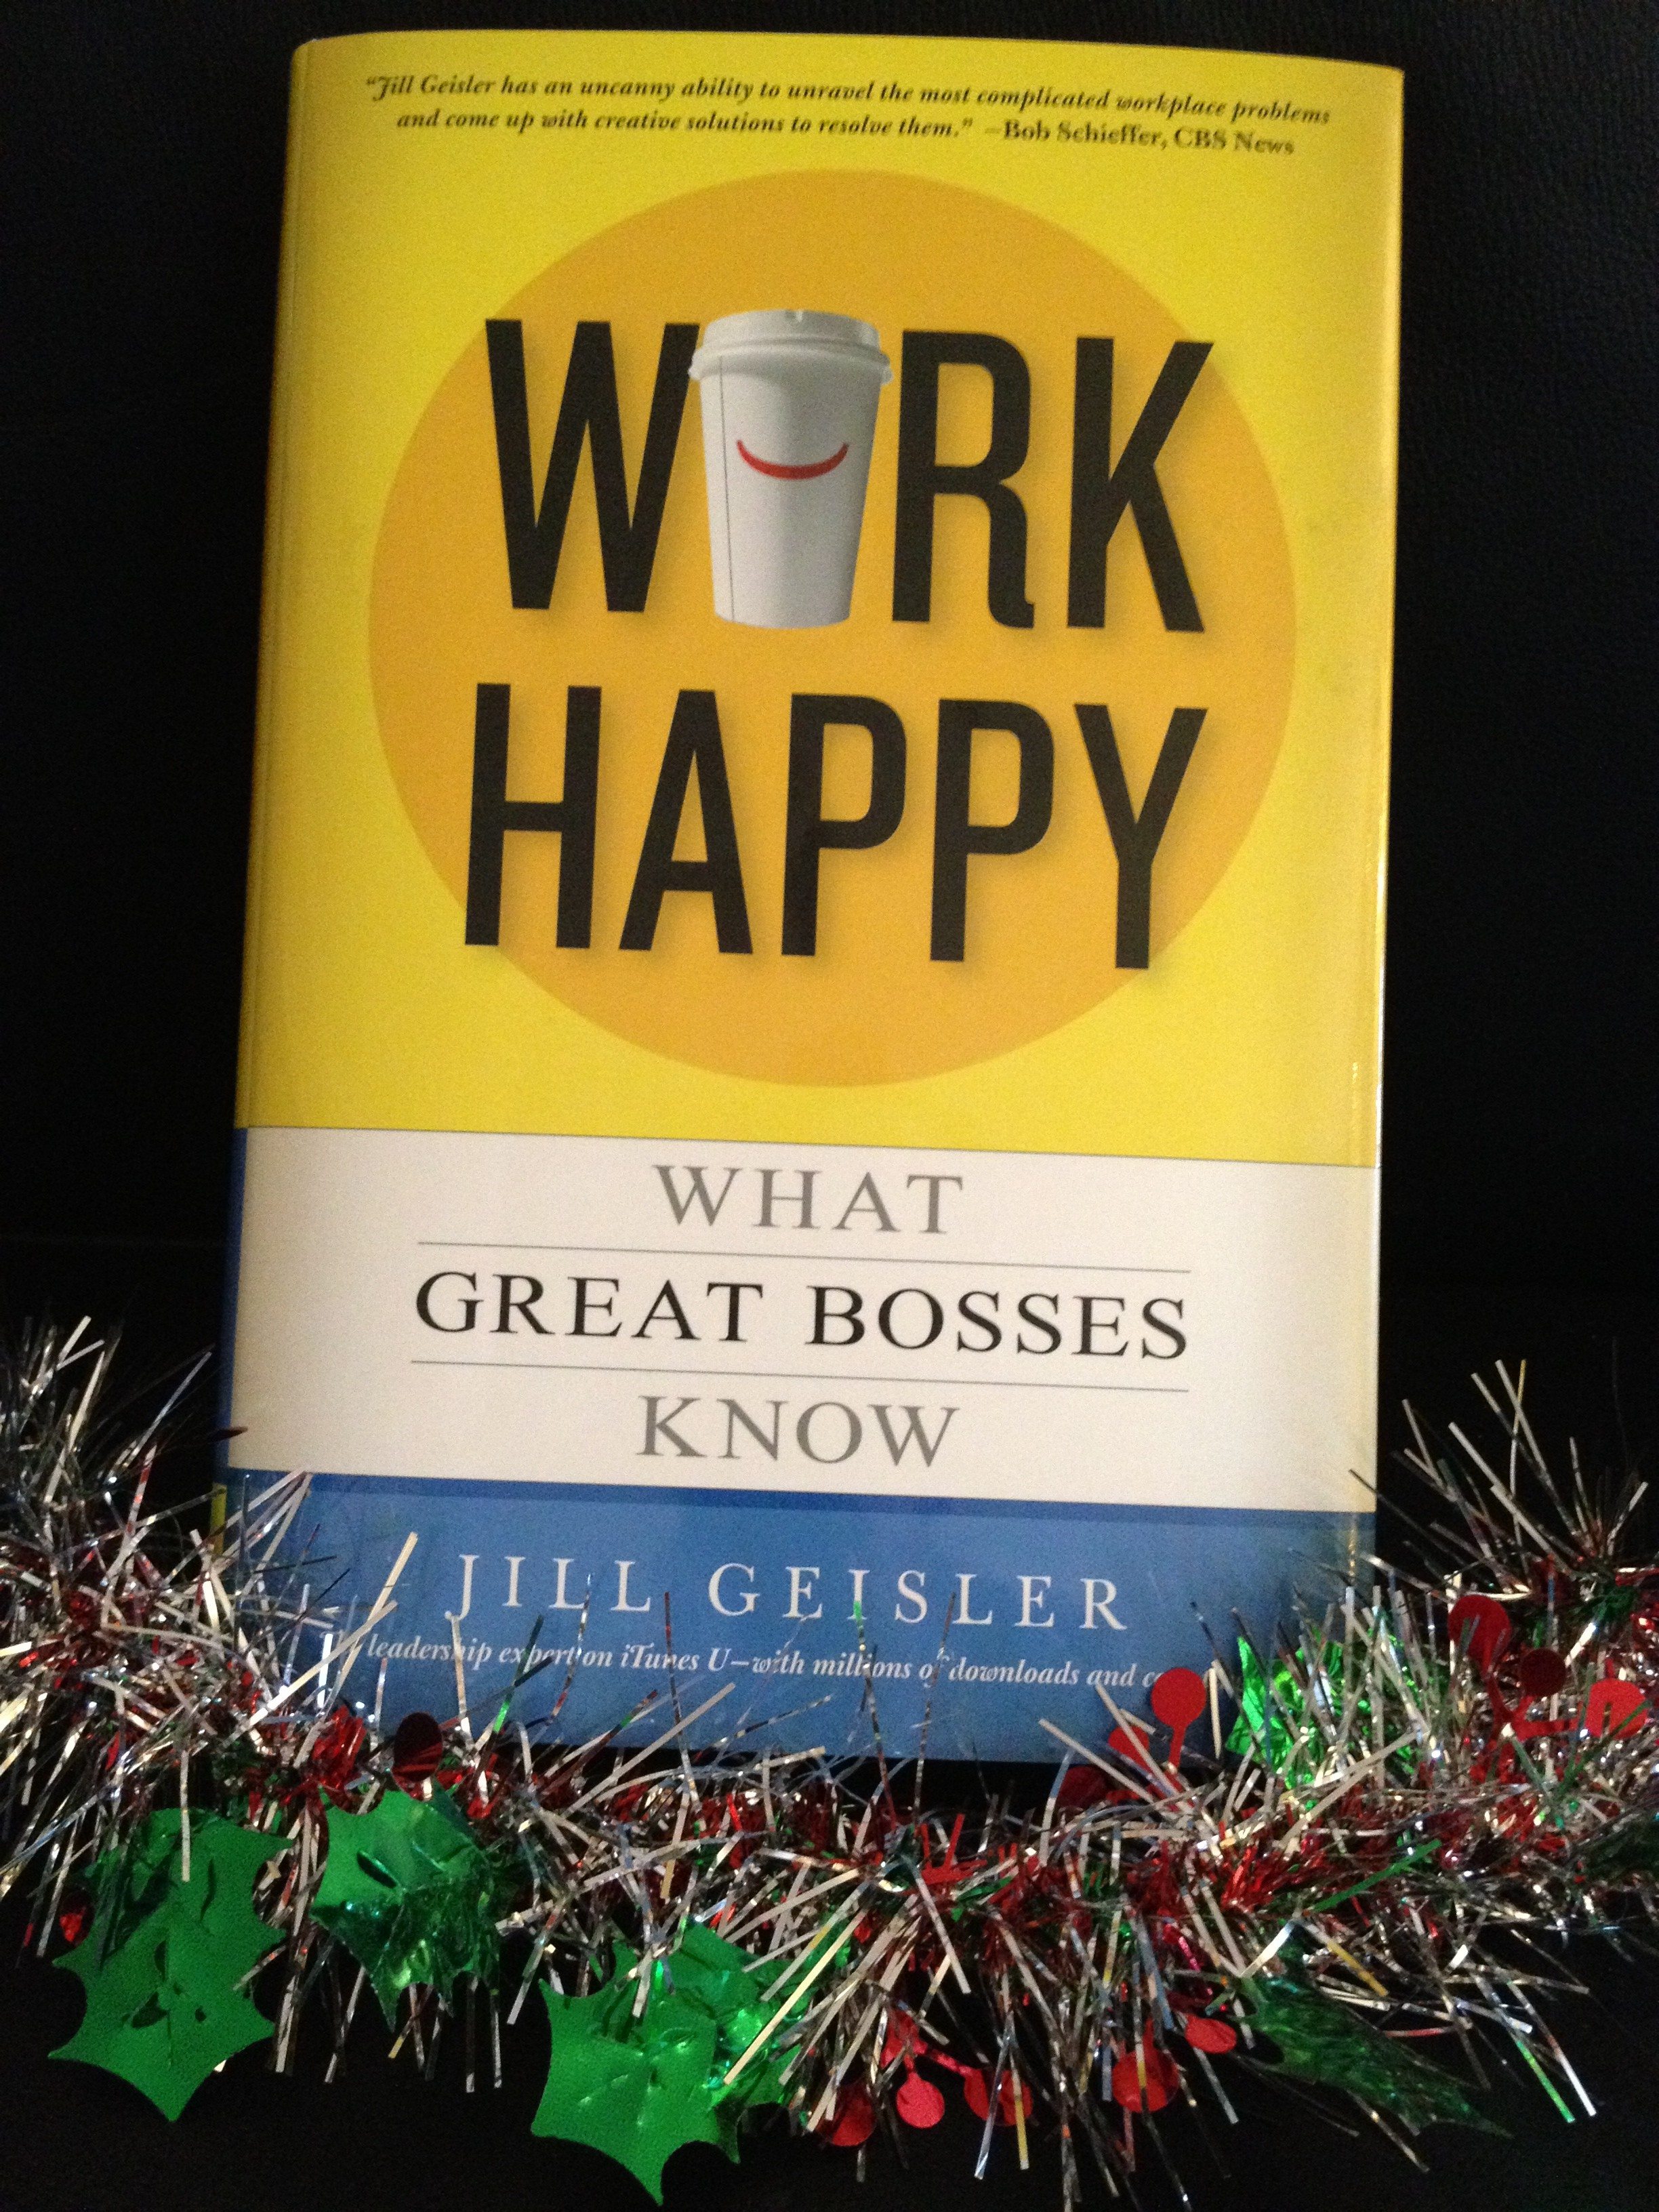 work happy what great bosses know jill geisler s book for as the thanksgiving holiday is upon us i wanted to express my thanks to you for a witty concise insightful and well endearing leadership book booster